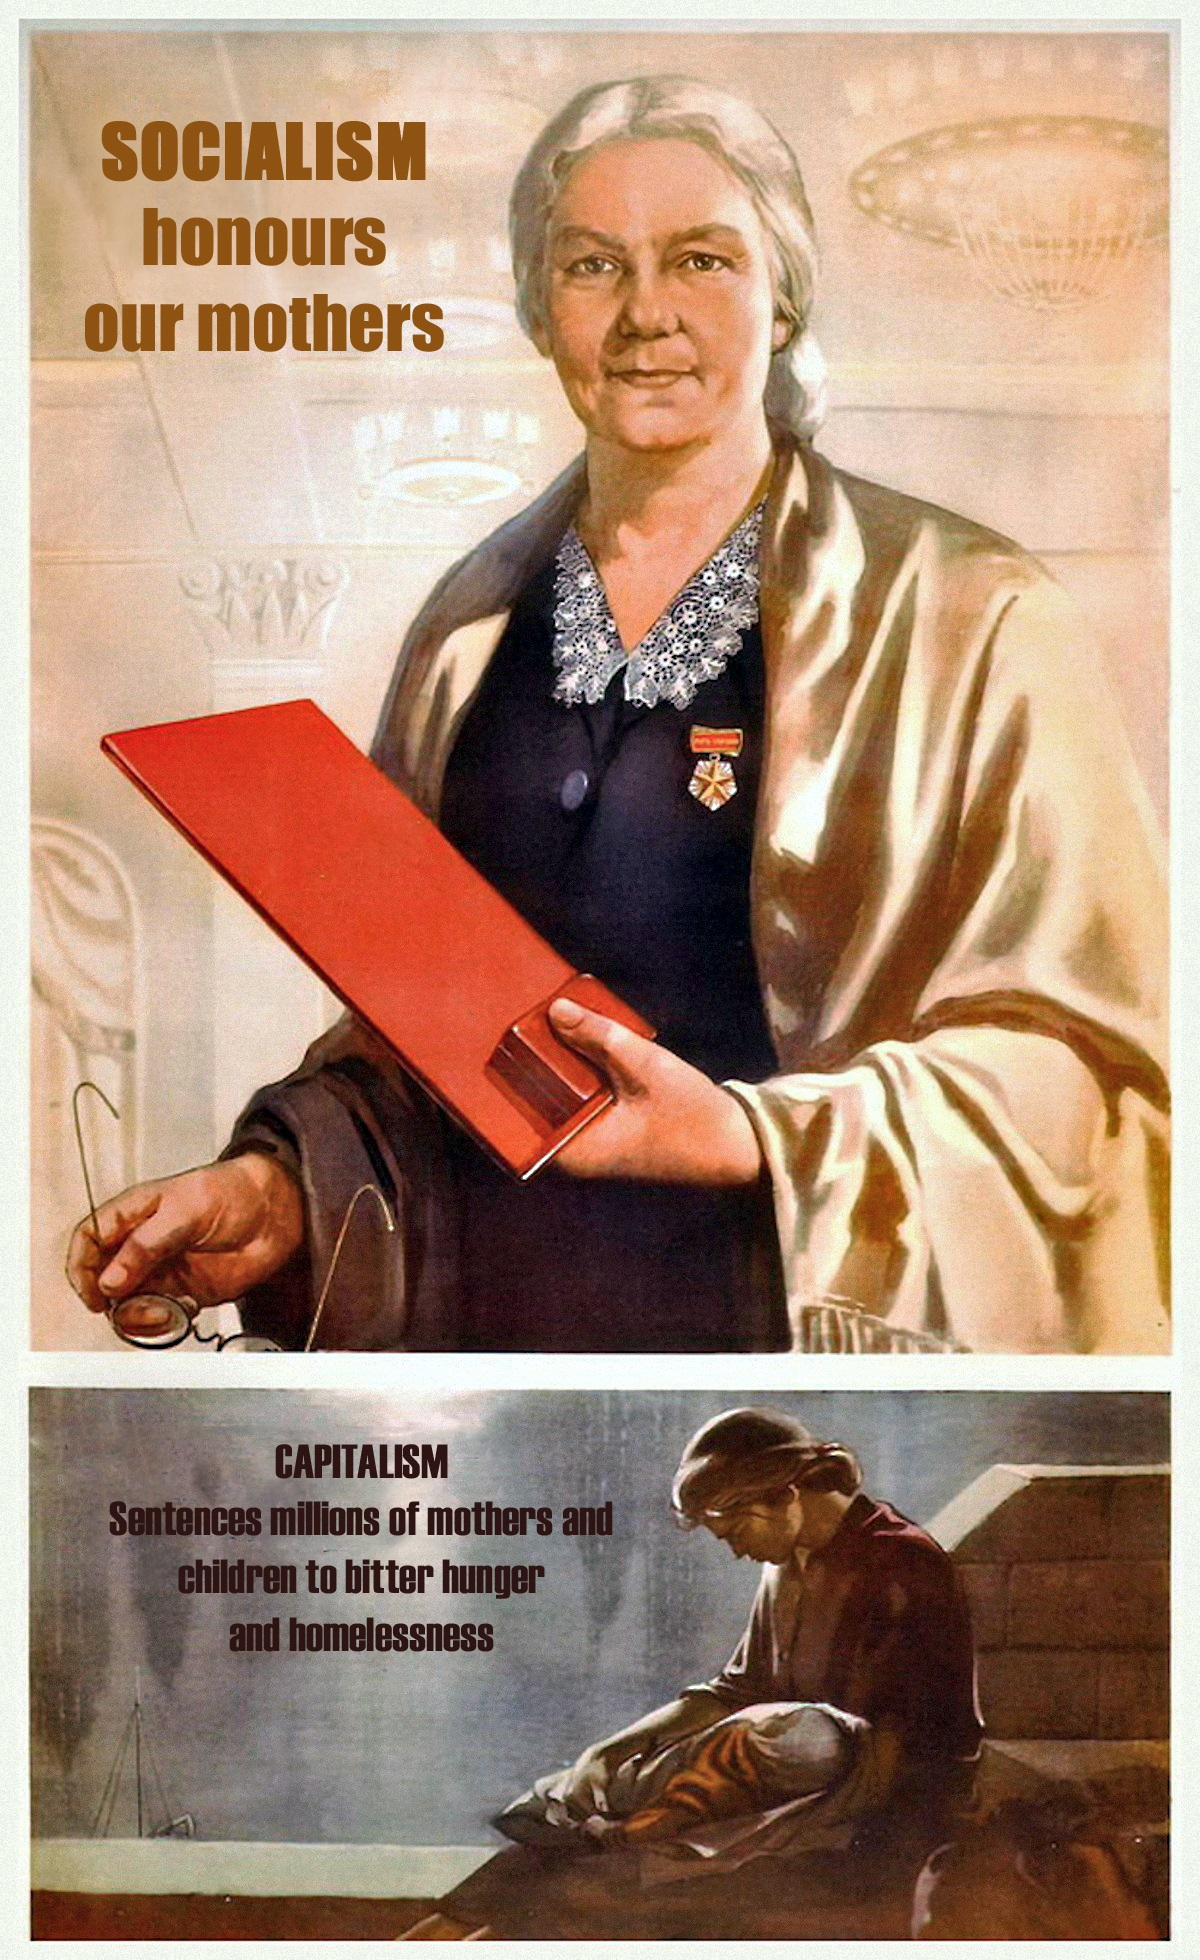 00 Socialism honours our mothers. 170316